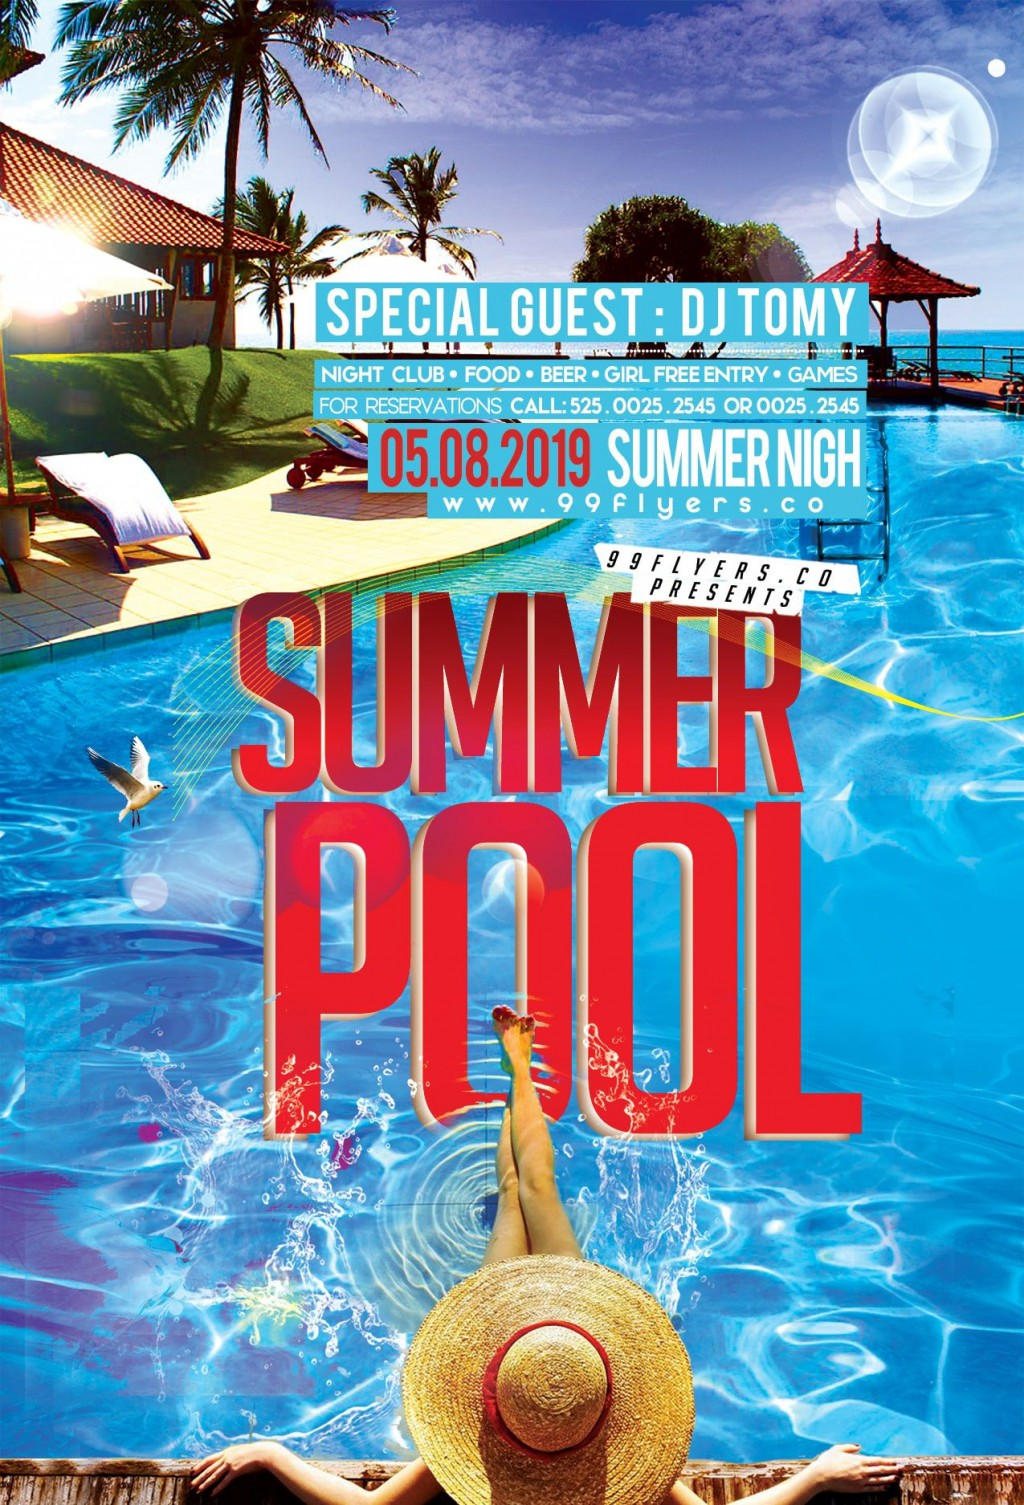 002 Impressive Free Pool Party Flyer Template Psd Concept  PhotoshopLarge